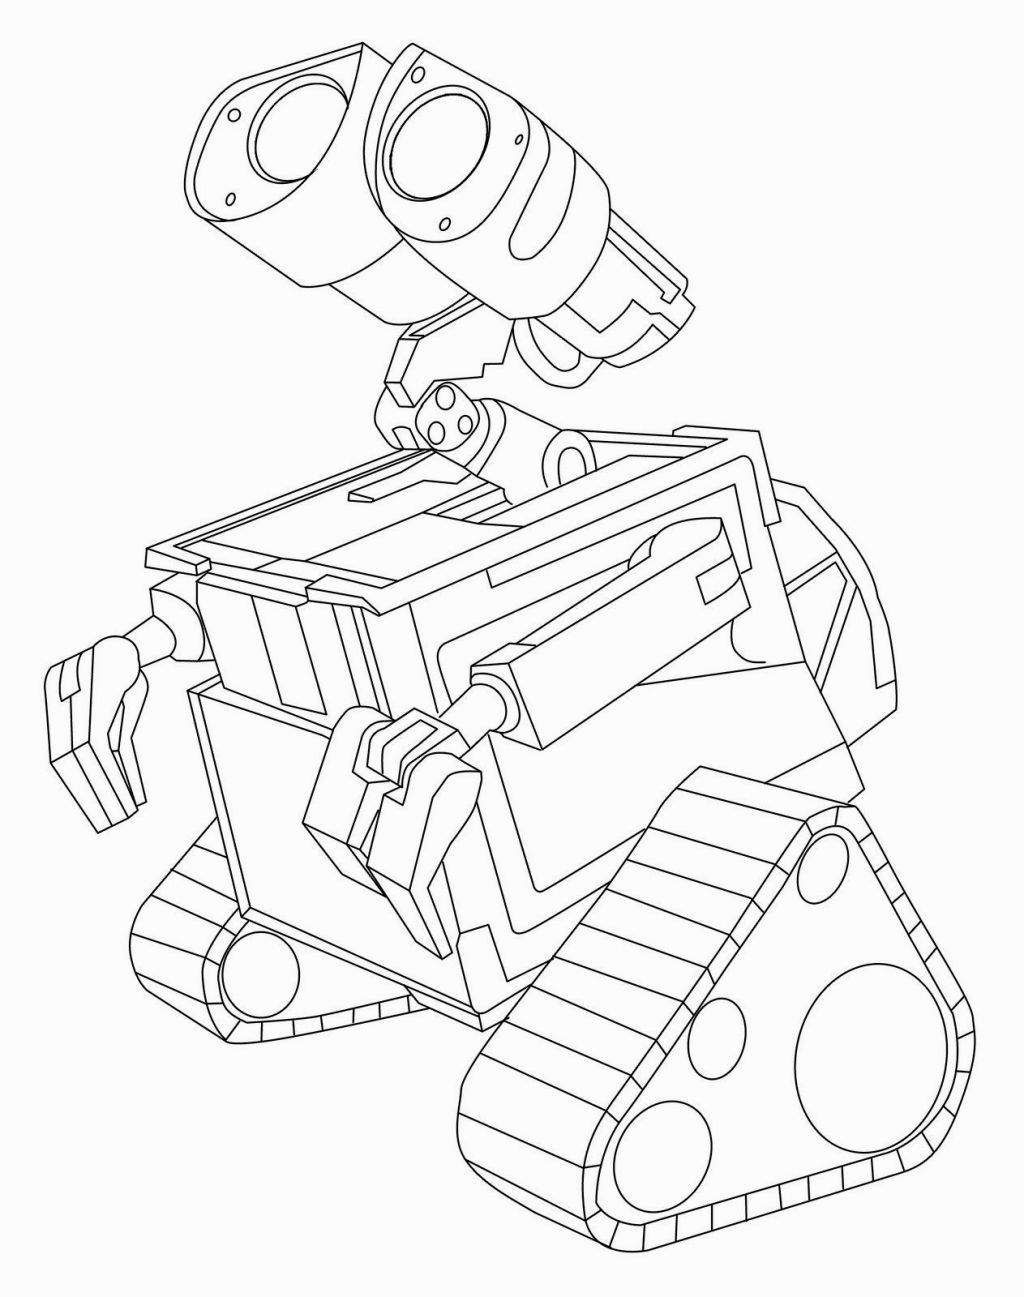 Wall-e Coloring Page | Coloring Pages | Pinterest | Walls